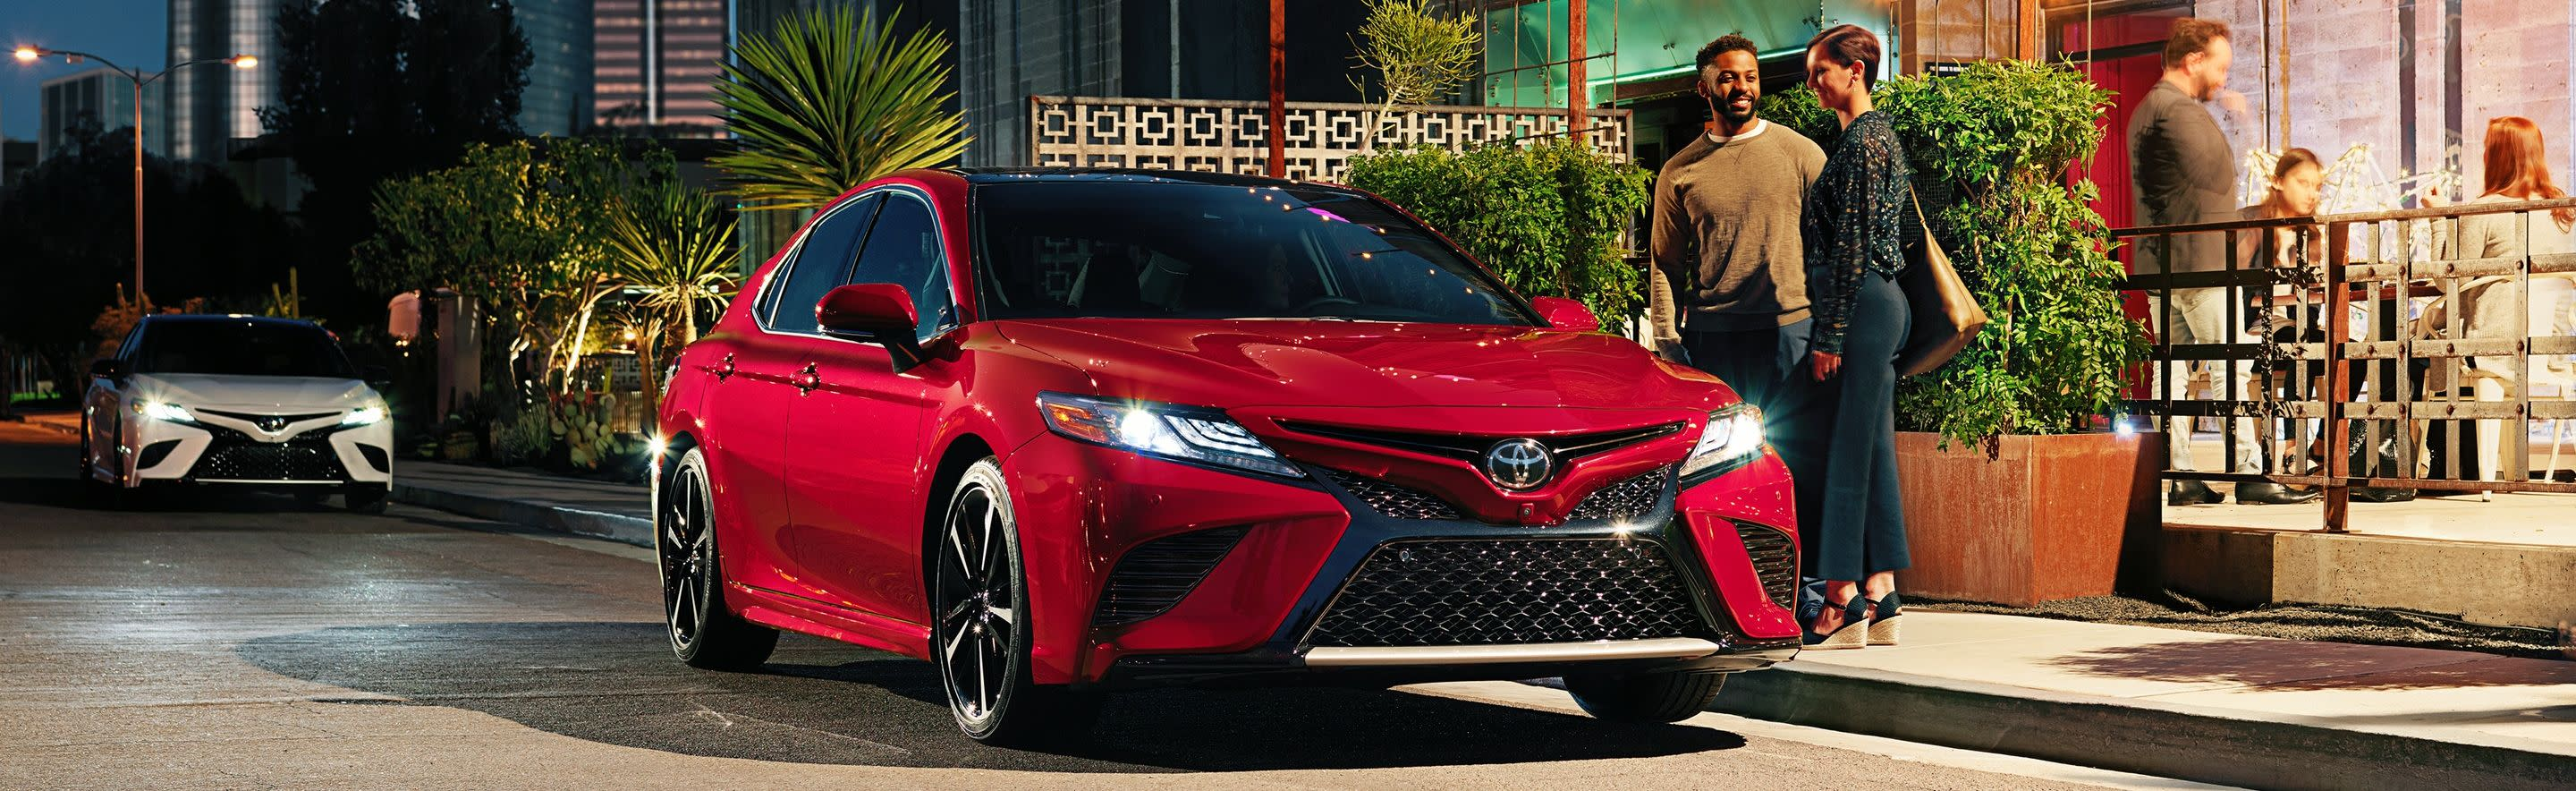 2019 Toyota Camry Leasing near Toledo, OH